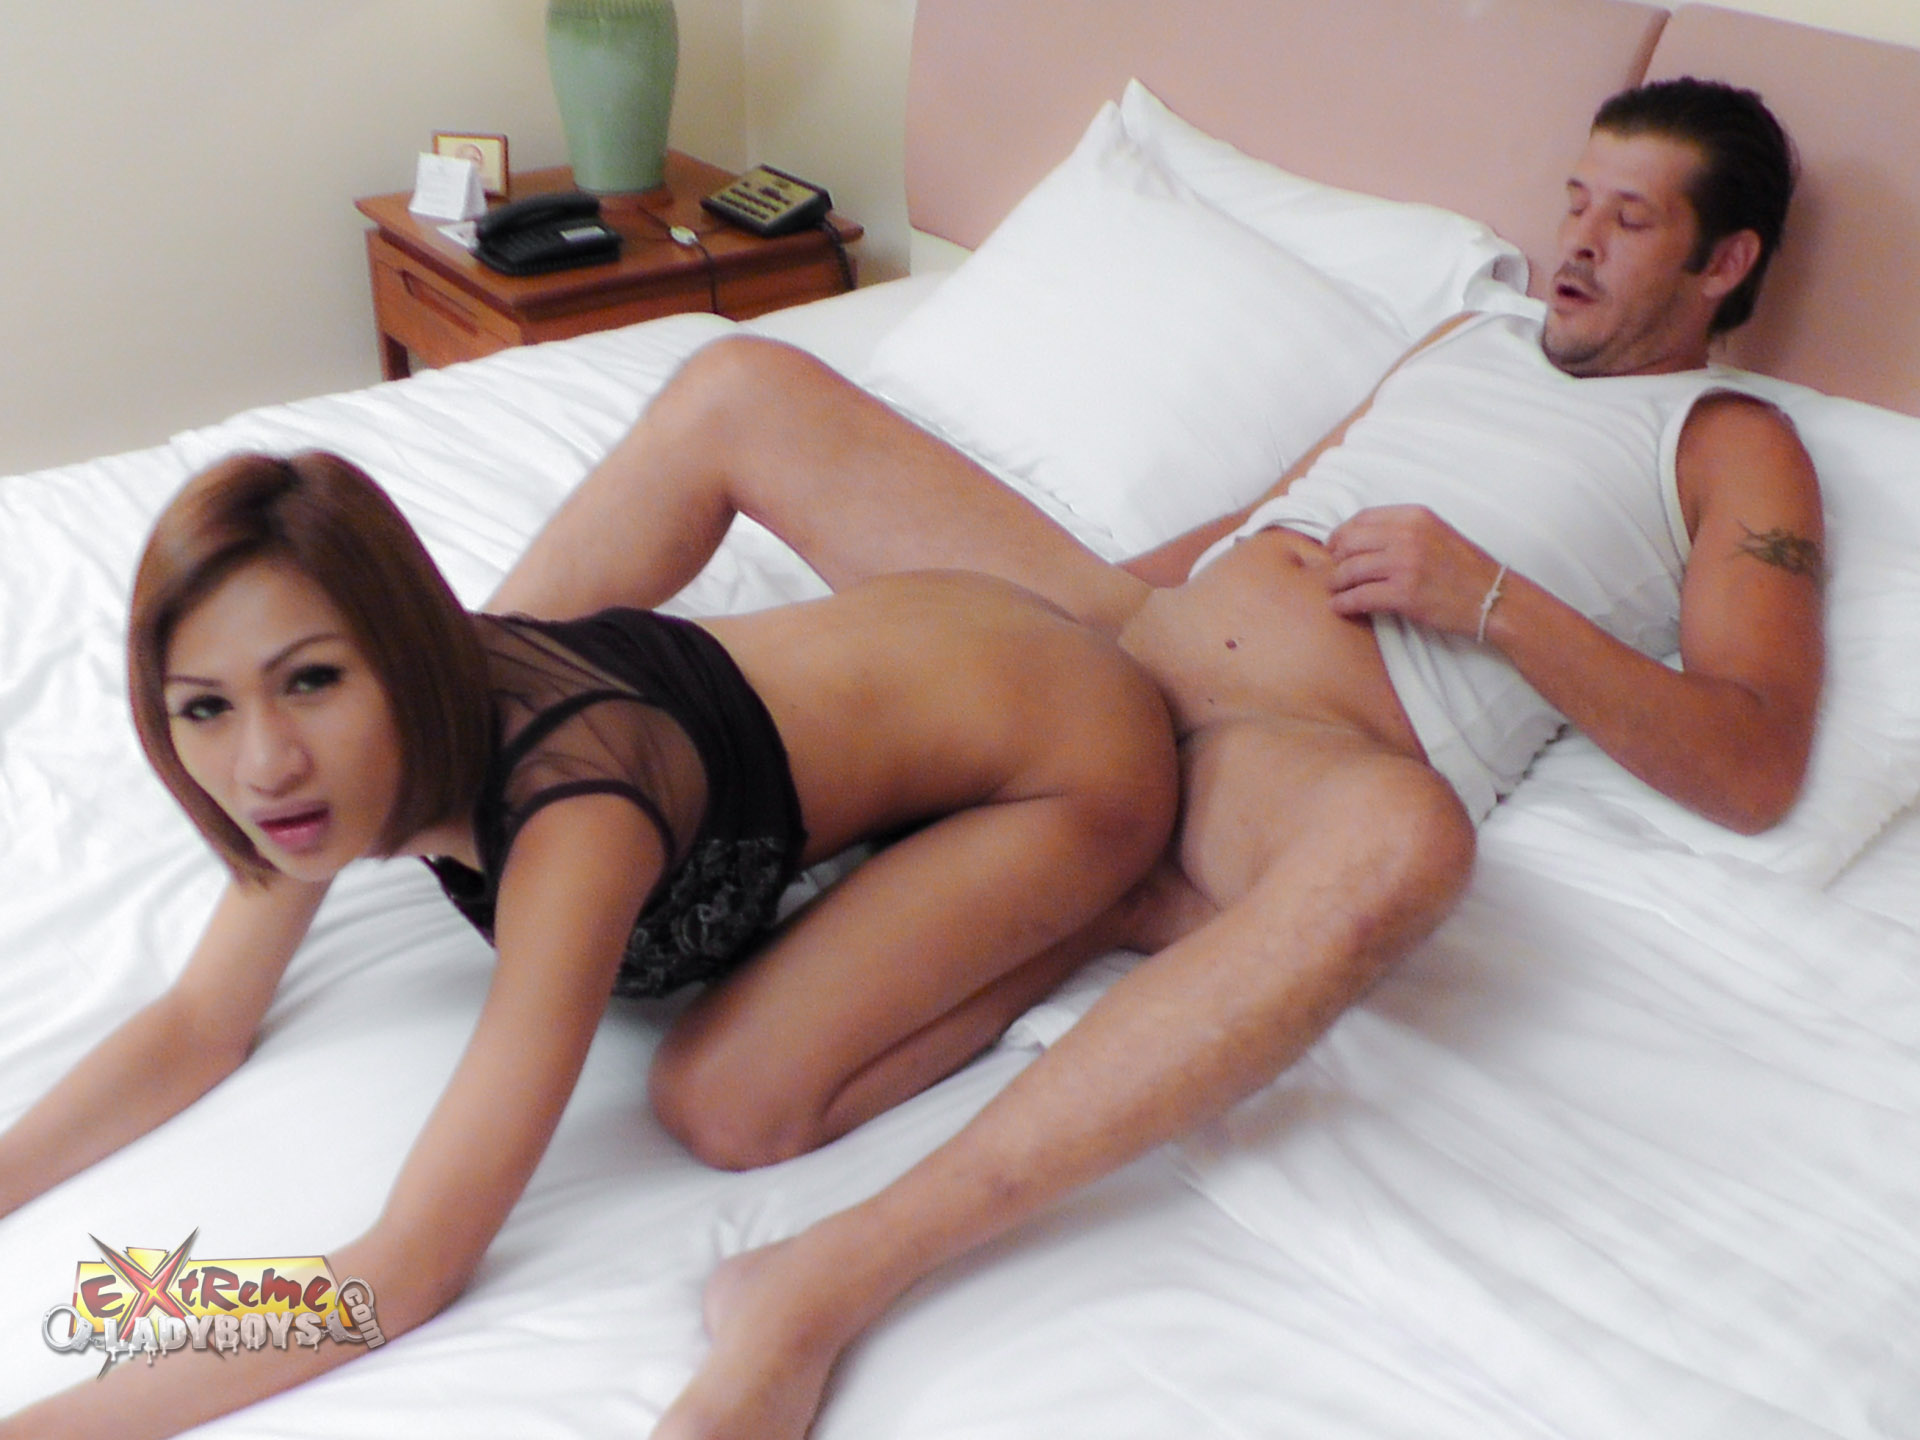 Asian Lady Boys Fucking